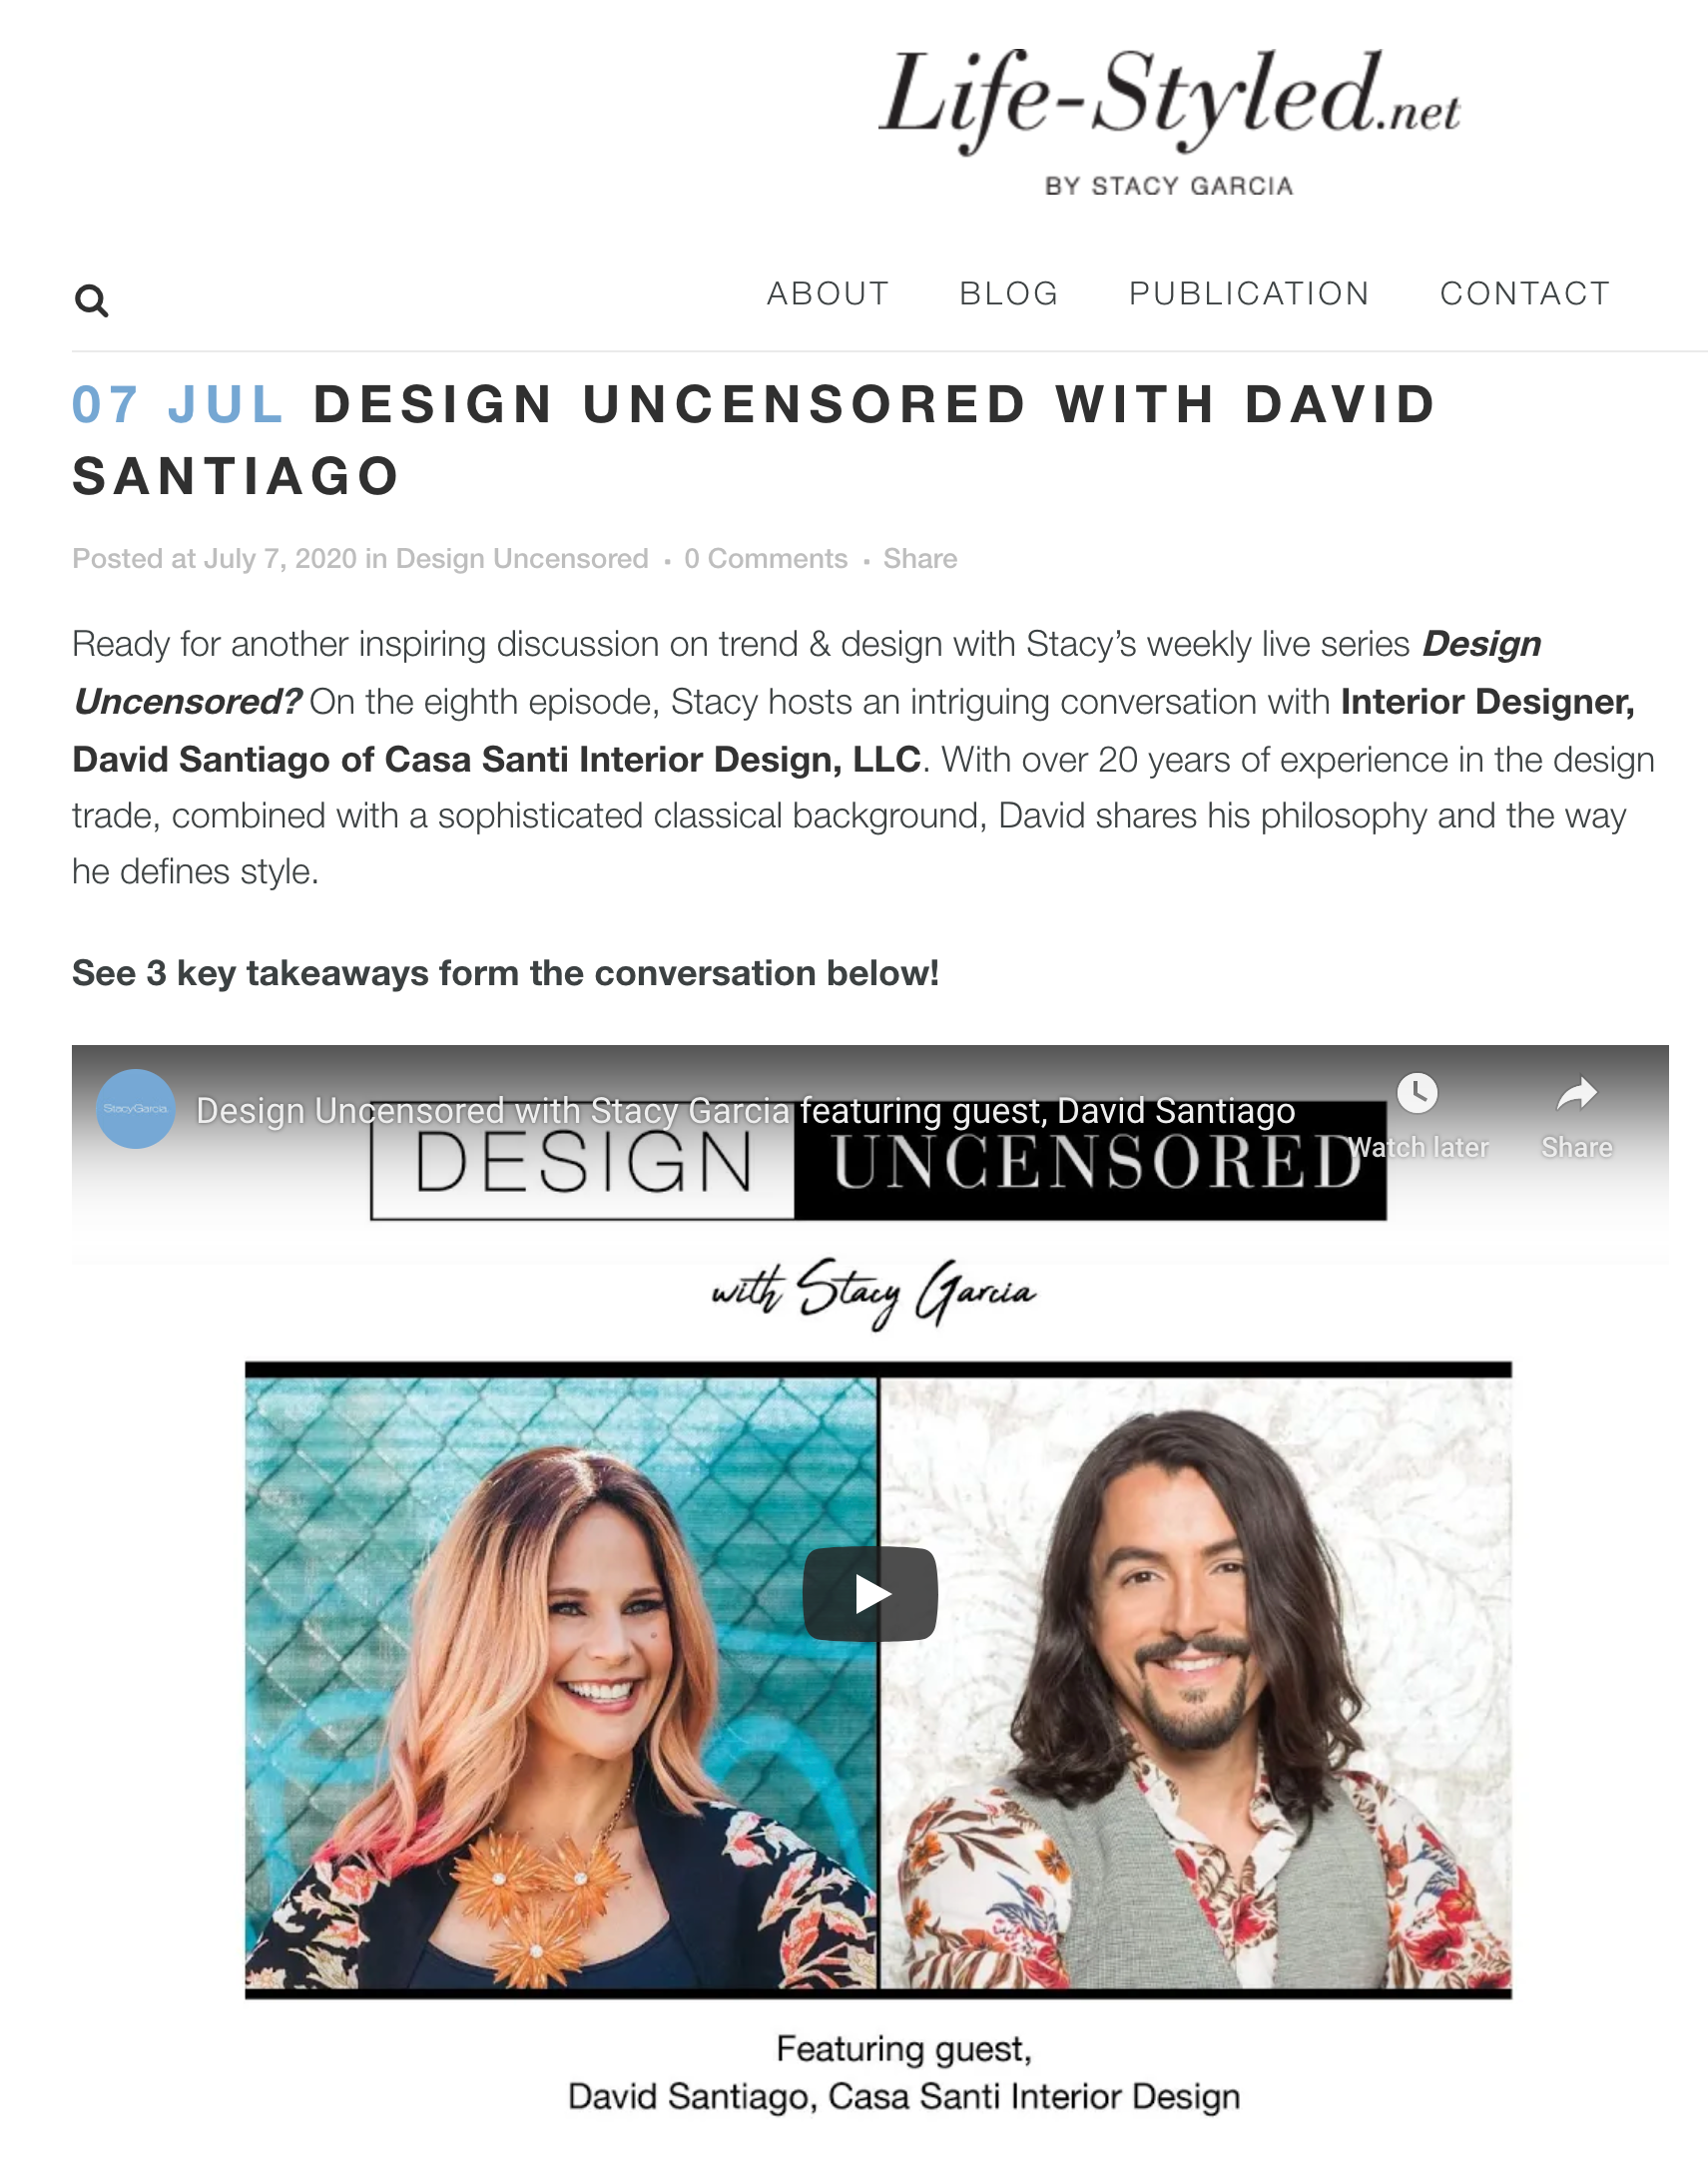 Life-styled - Stacy Garcia | Design Uncensored with David Santiago